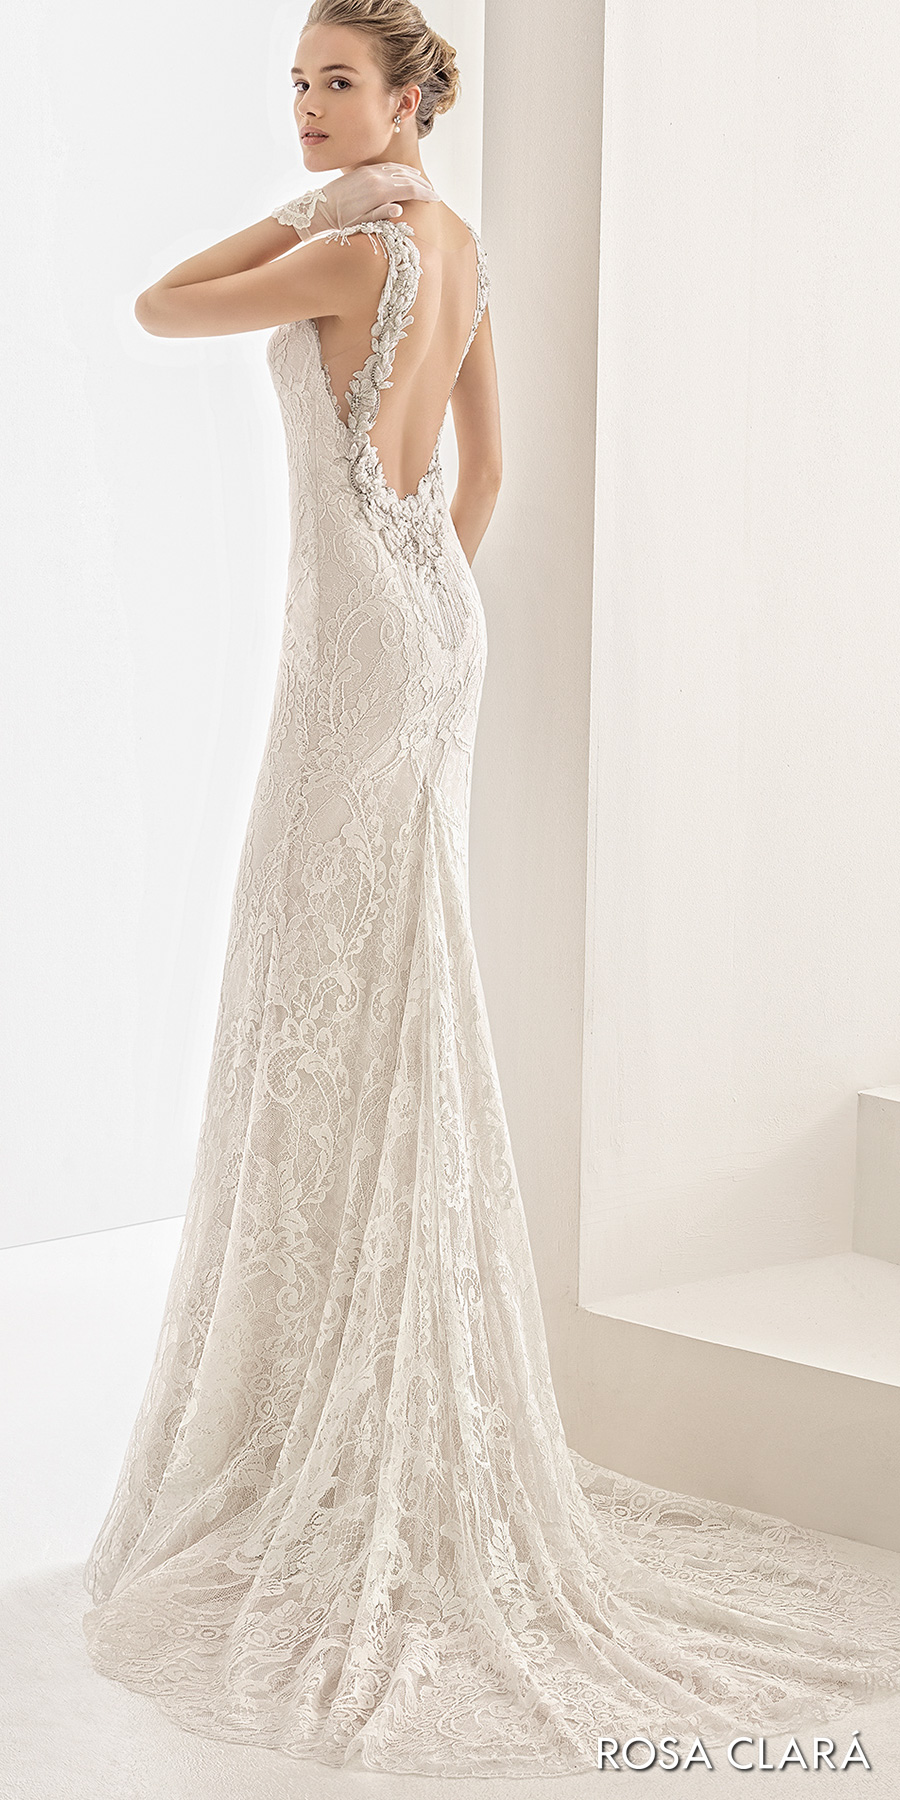 rosa clara 2017 bridal sleeveless embellished strap sweetheart neckline full embellishment elegant sheath wedding dress open low back sweep train (naila) bv